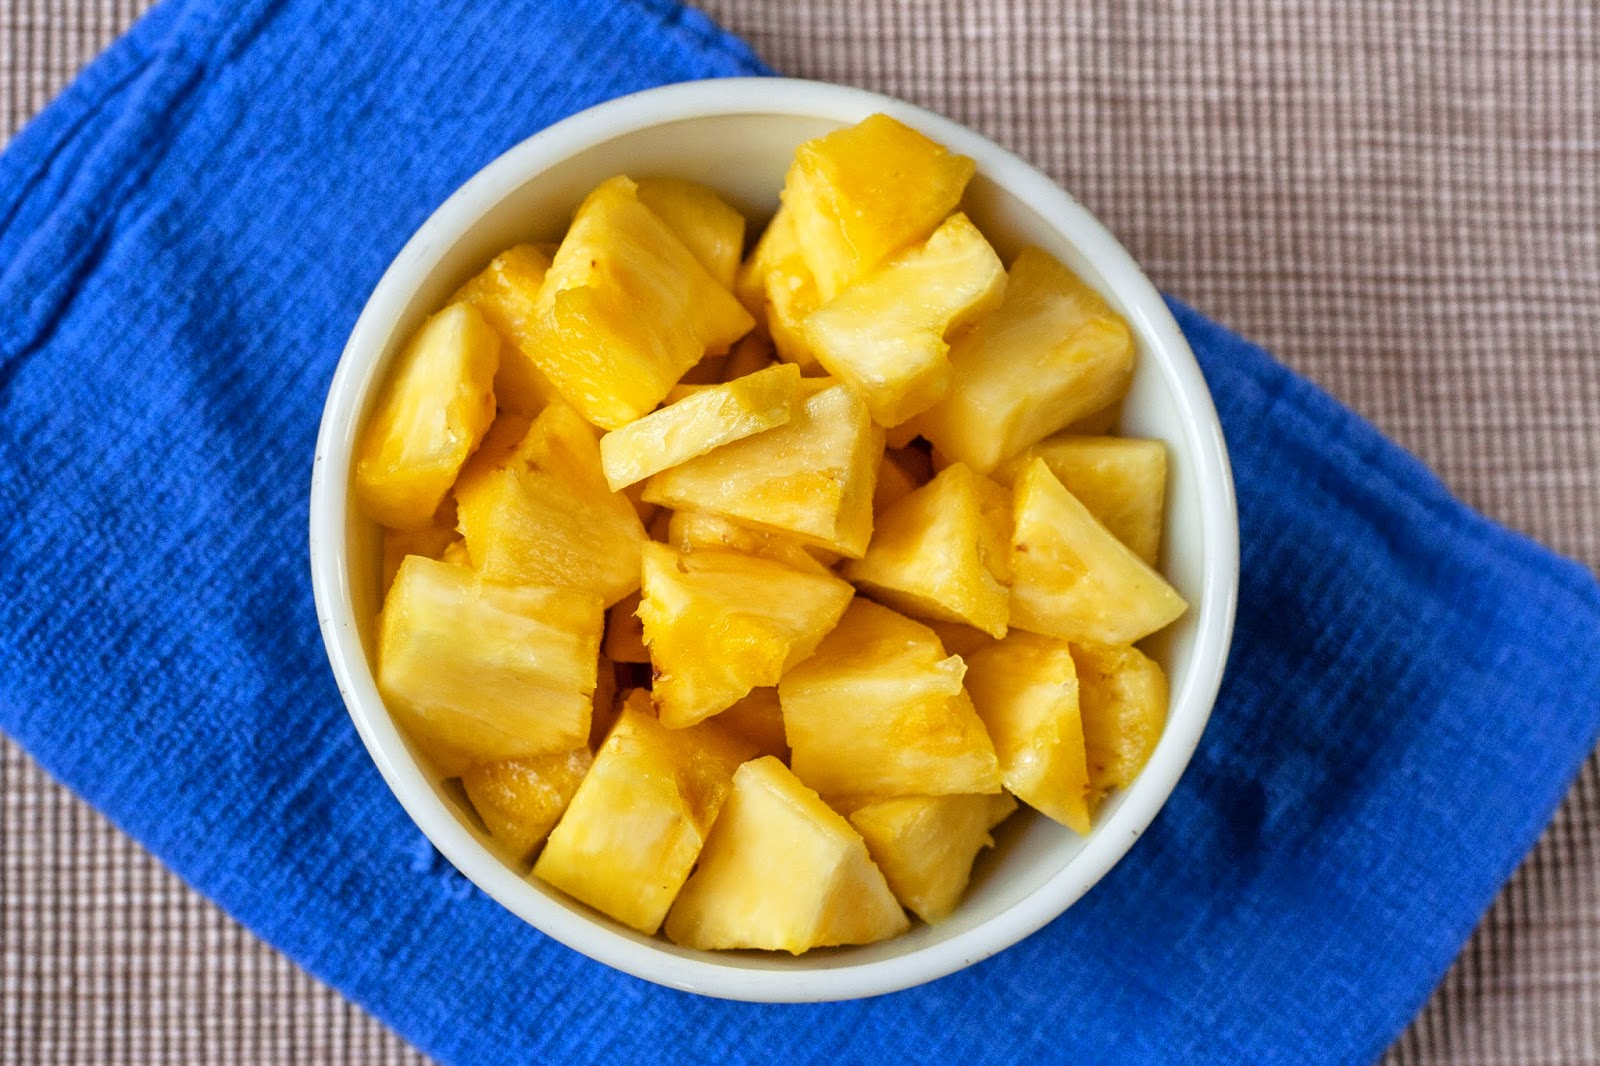 A bowl of chopped pineapple